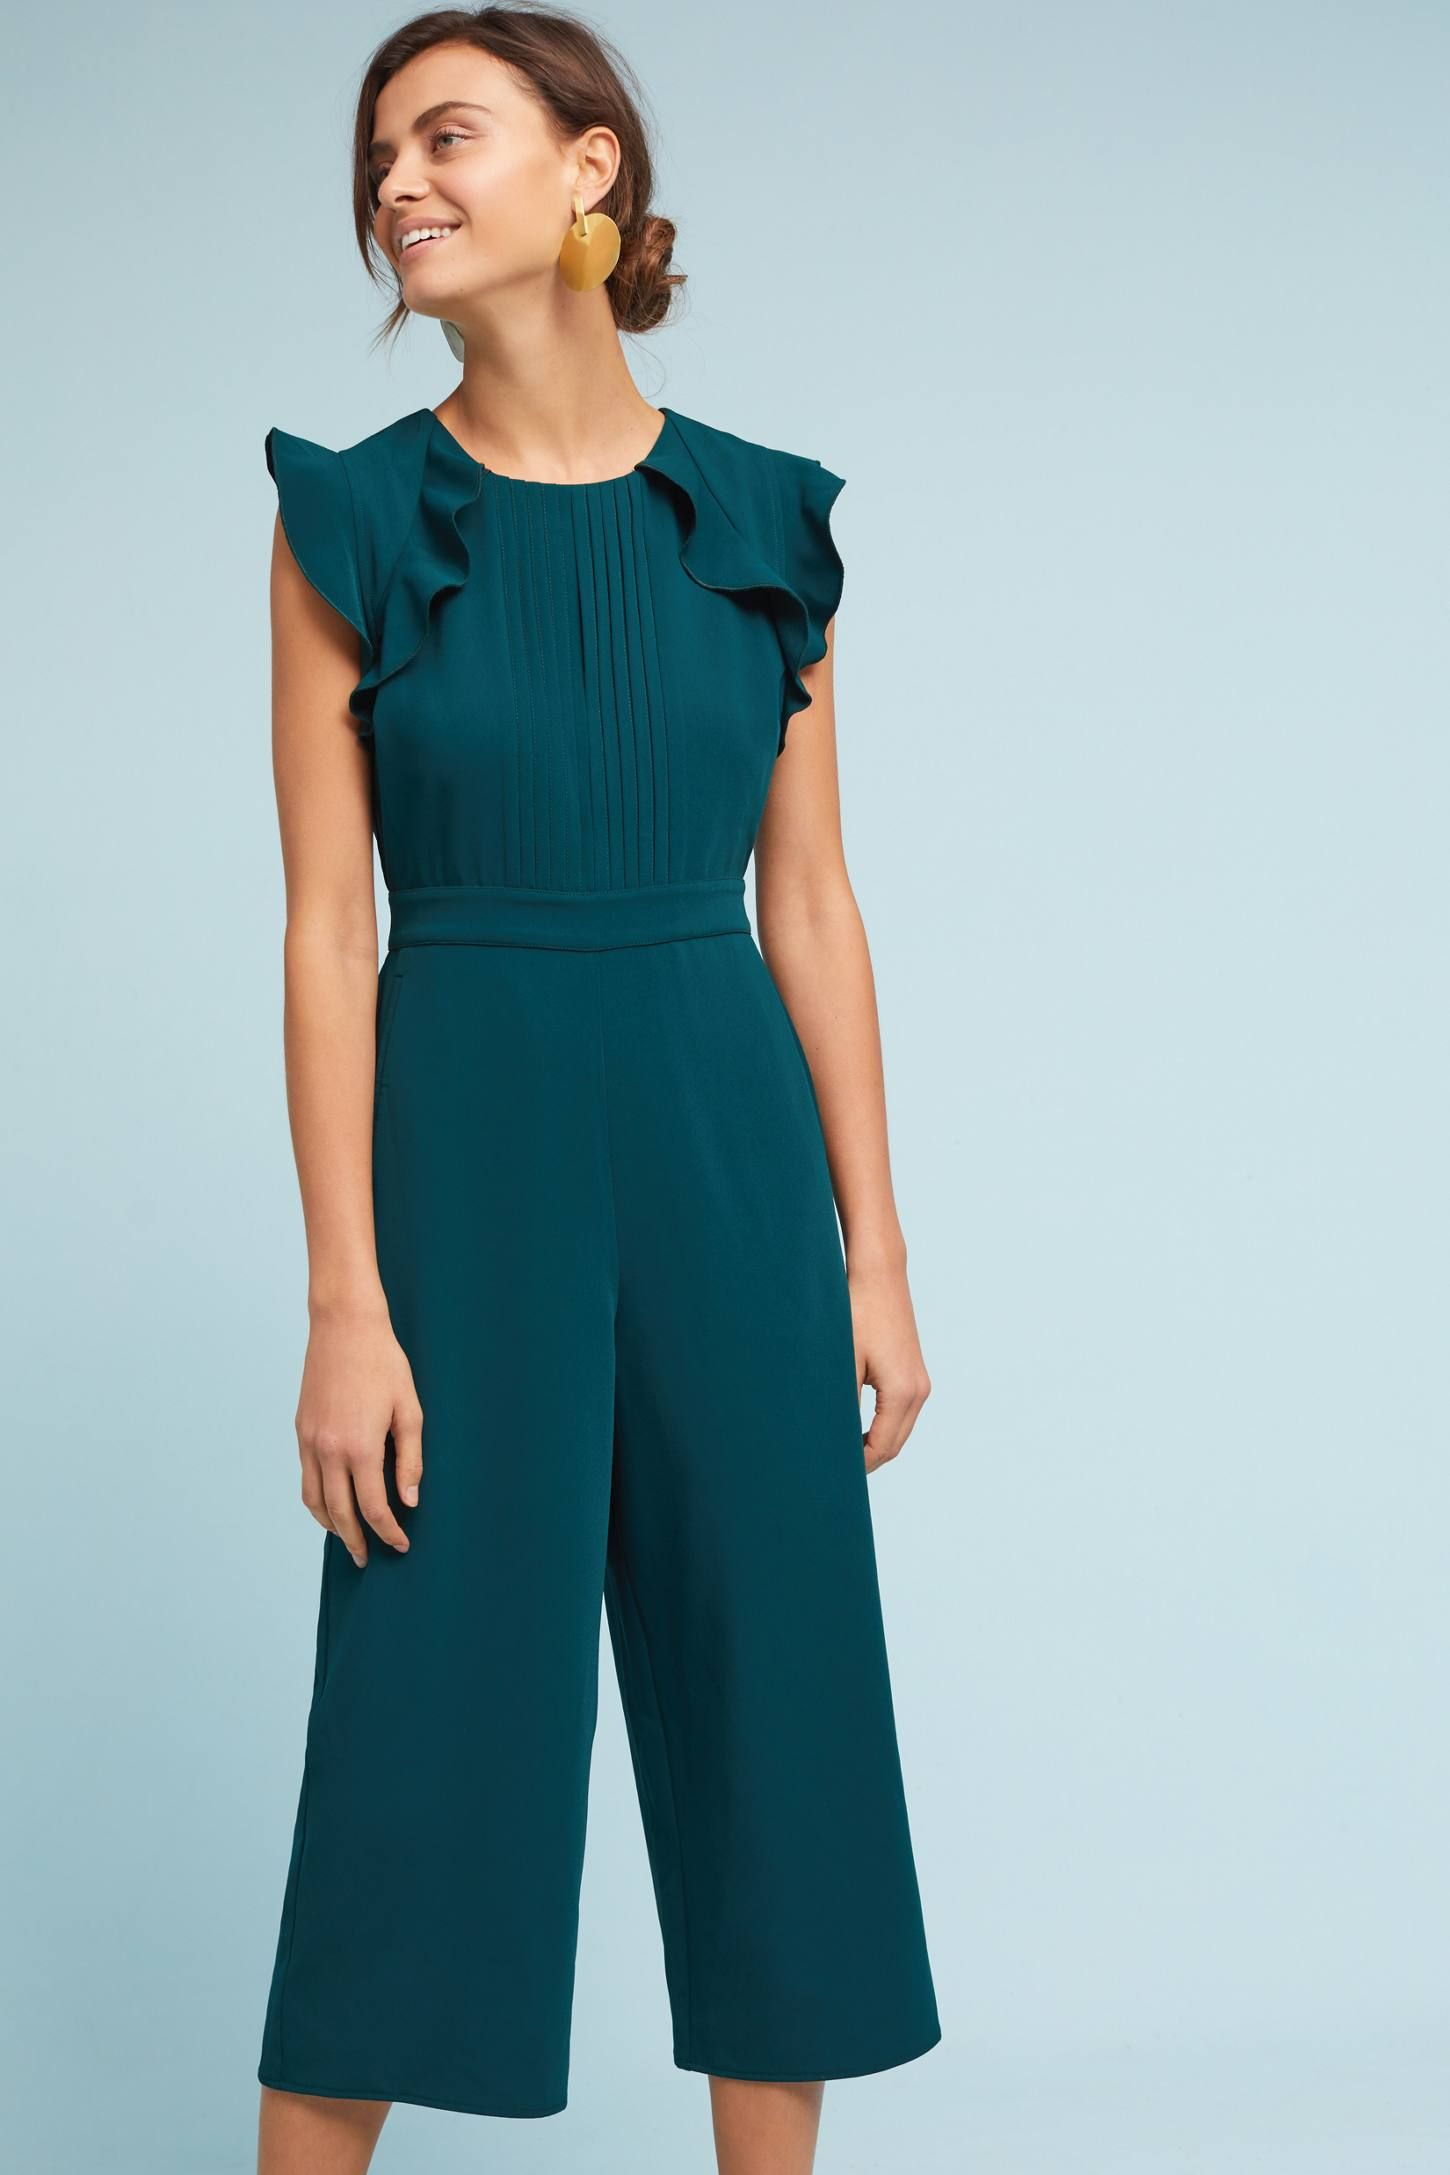 dc98f352c6d Shop the Pleated   Ruffled Jumpsuit and more Anthropologie at Anthropologie  today. Read customer reviews